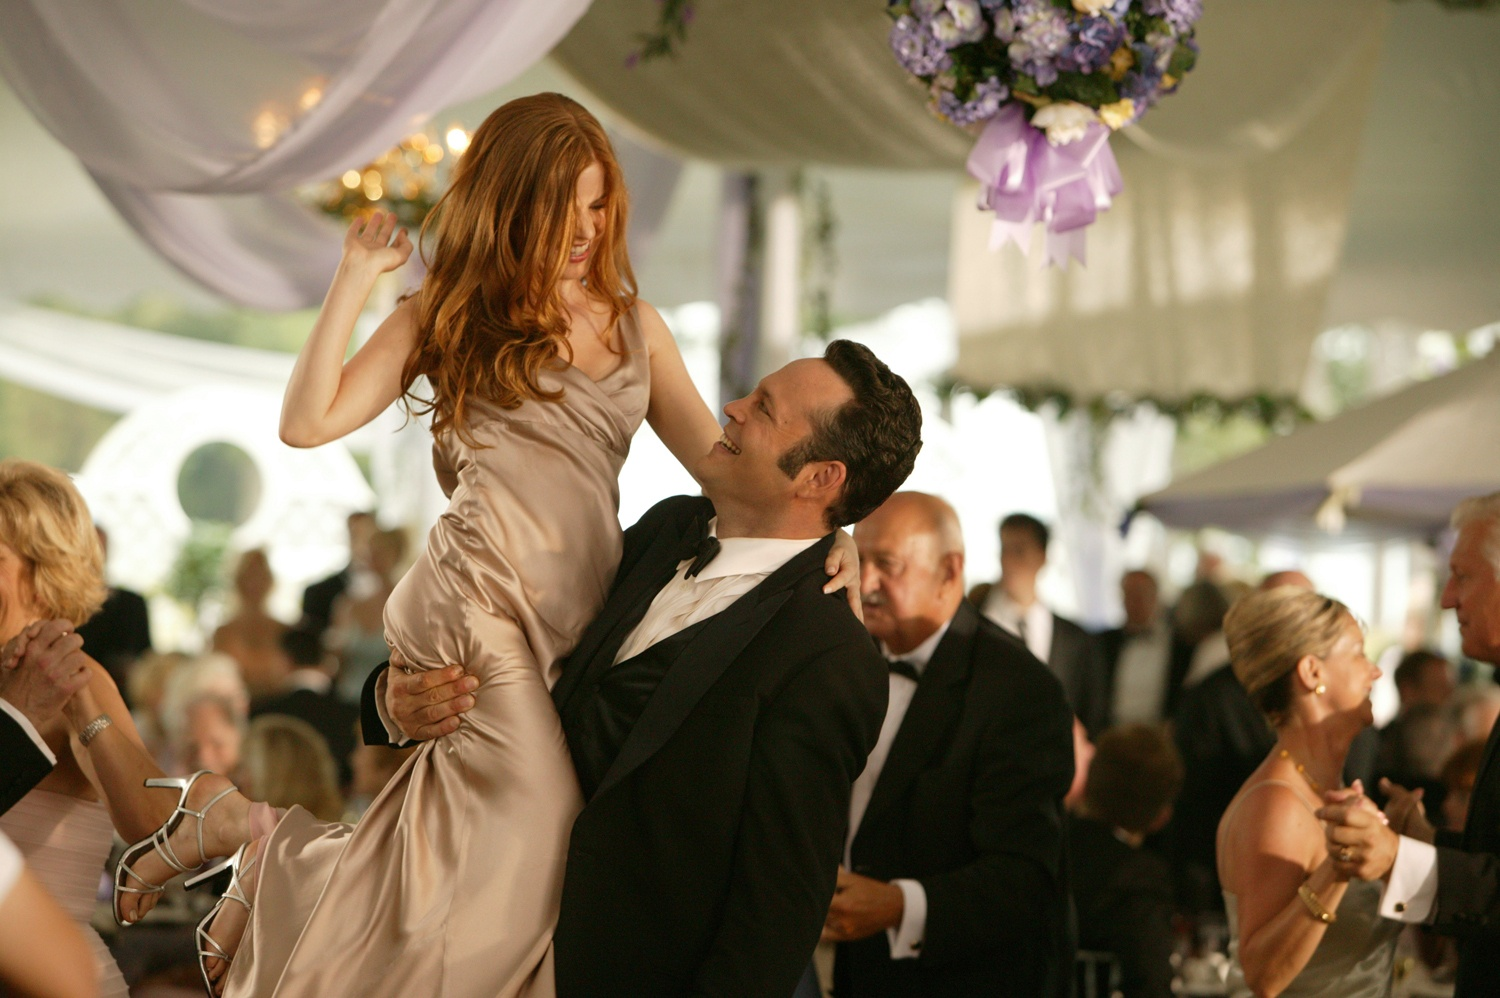 wedding crashers isla fisher vince vaughn